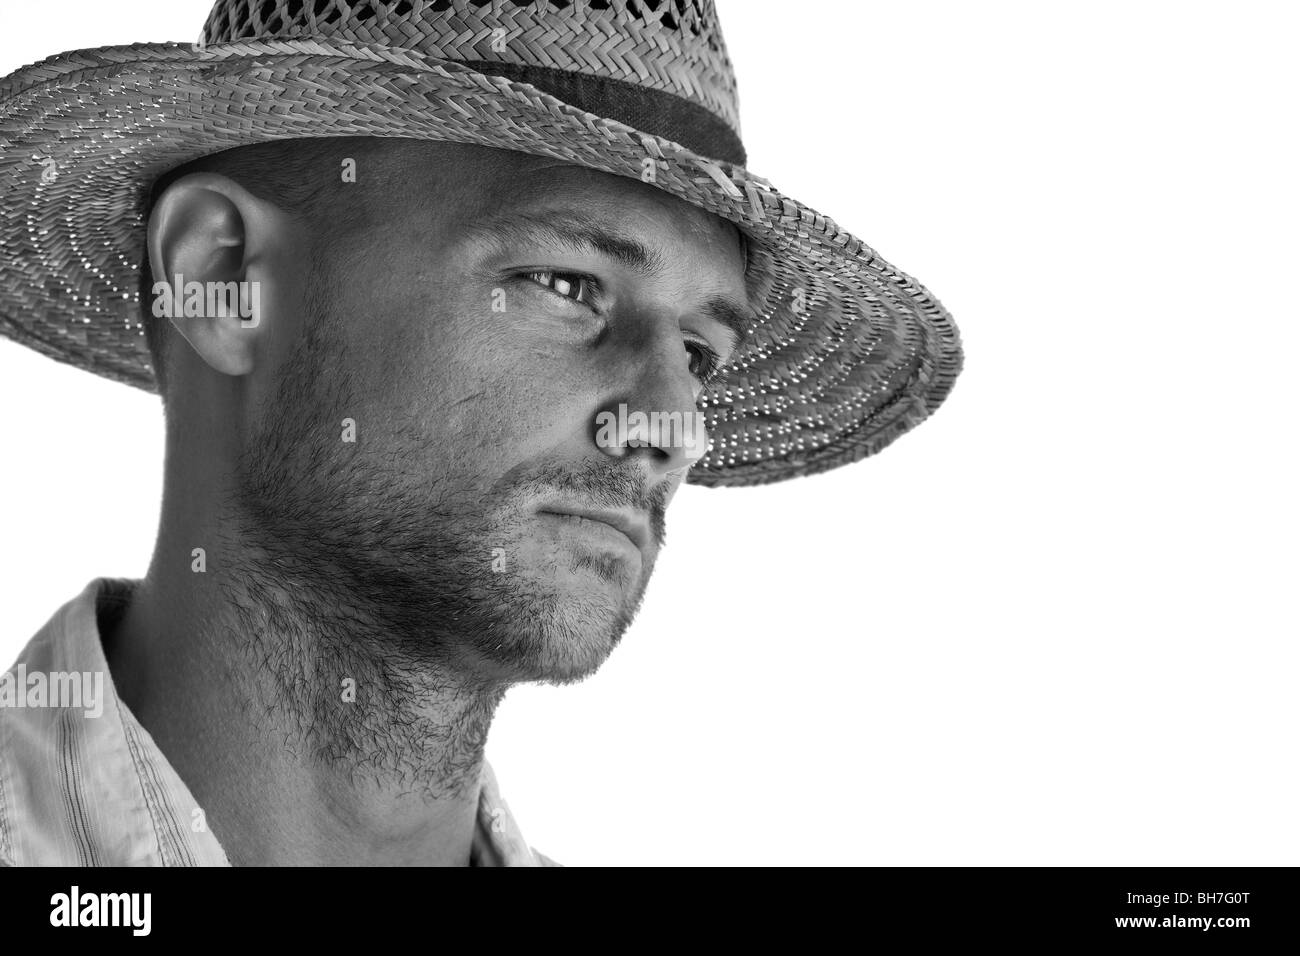 Portrait of a man in a straw hat, with a studio white background, in attractive mono - Stock Image